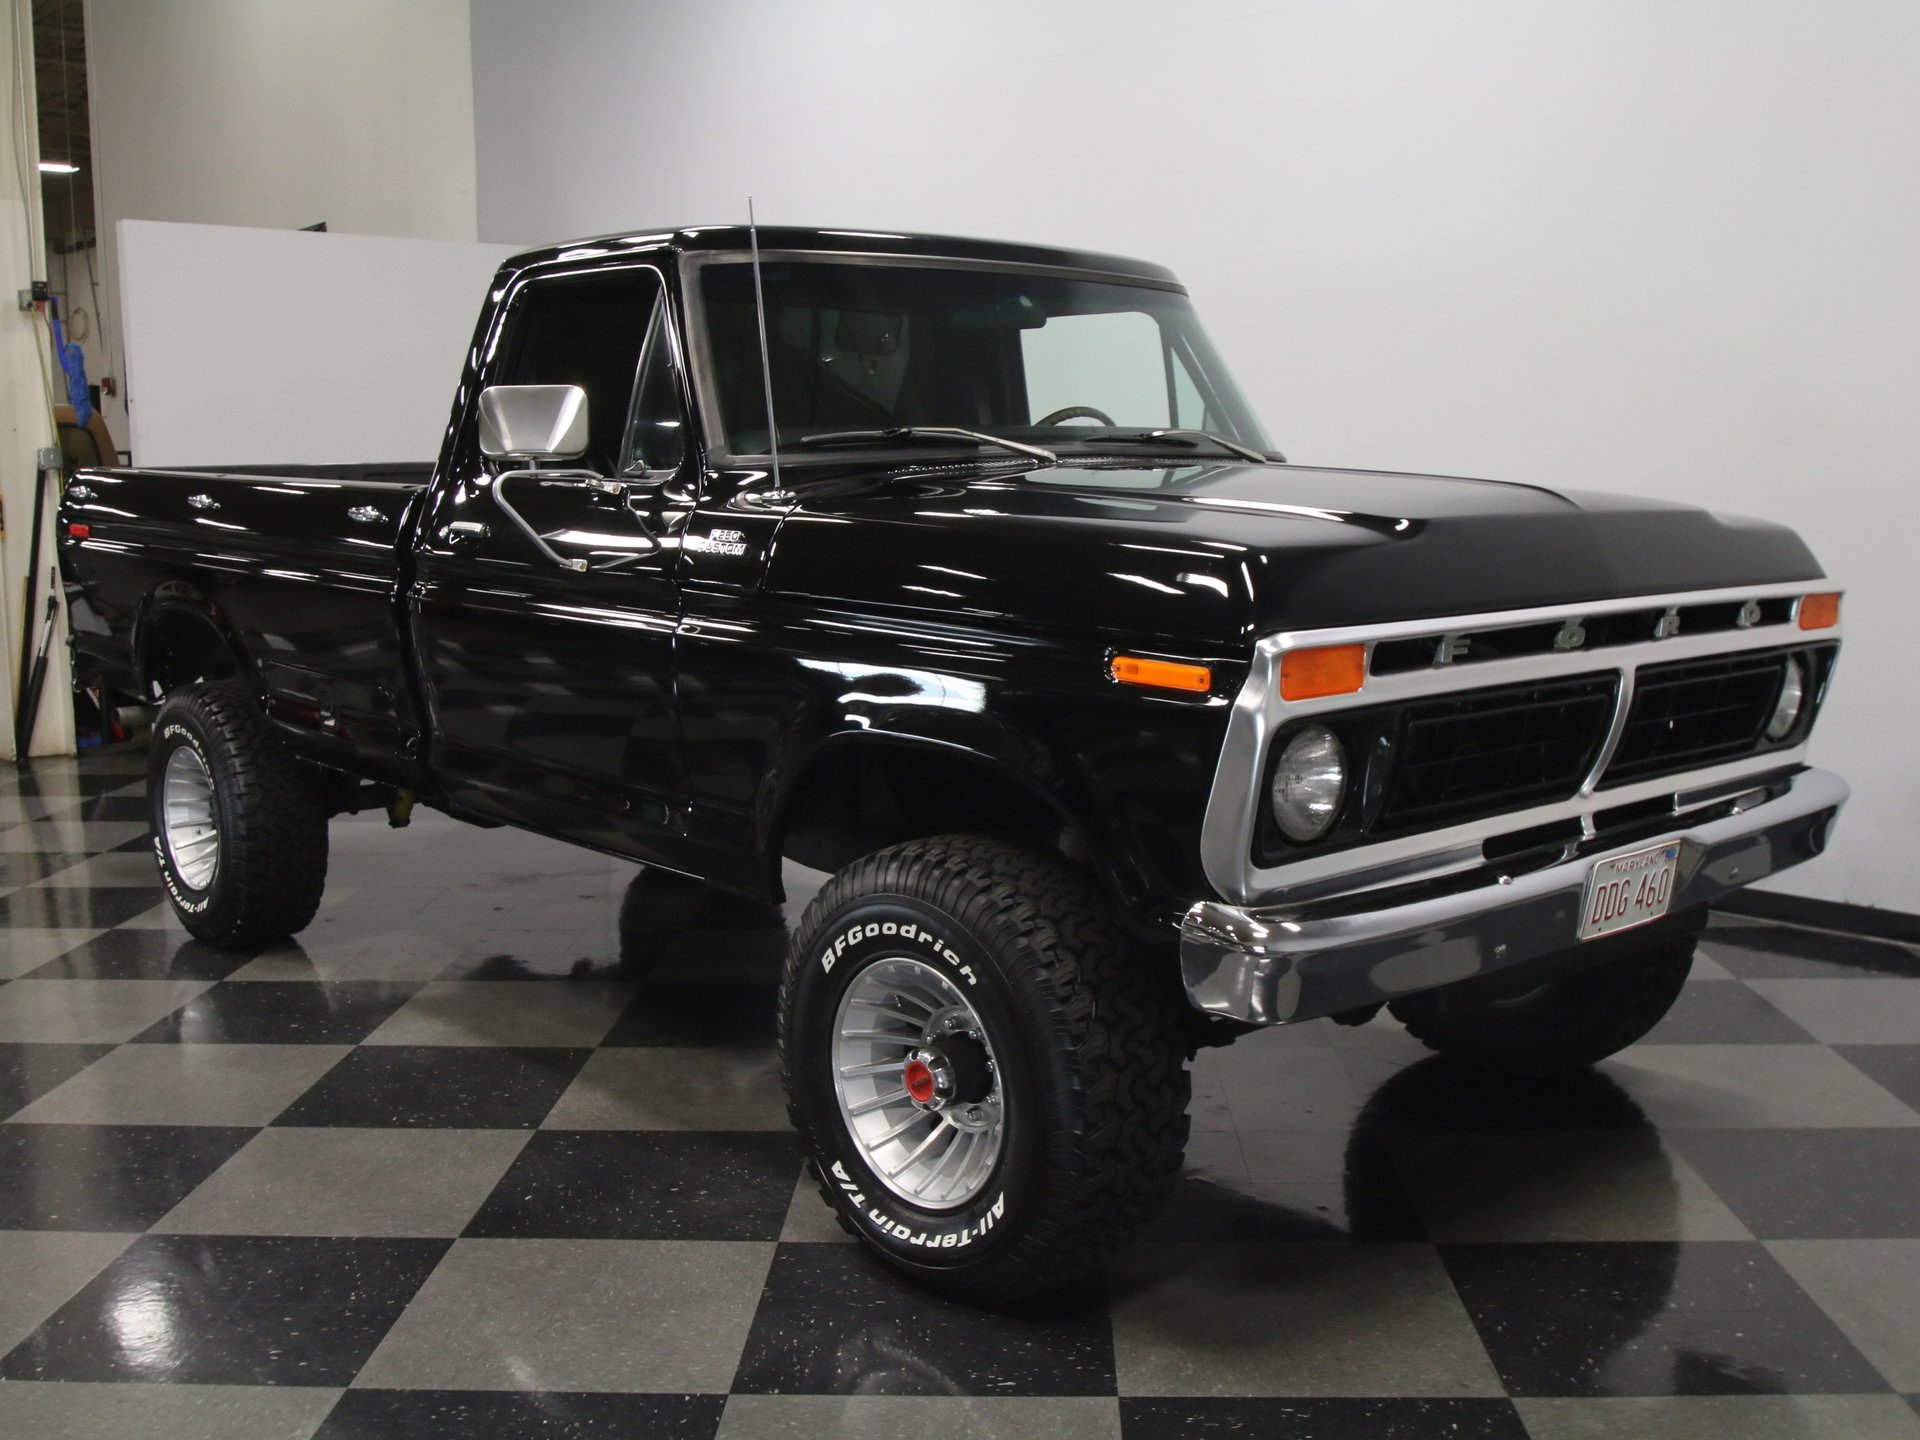 1977 Ford F-250 | Streetside Classics - The Nation's Trusted